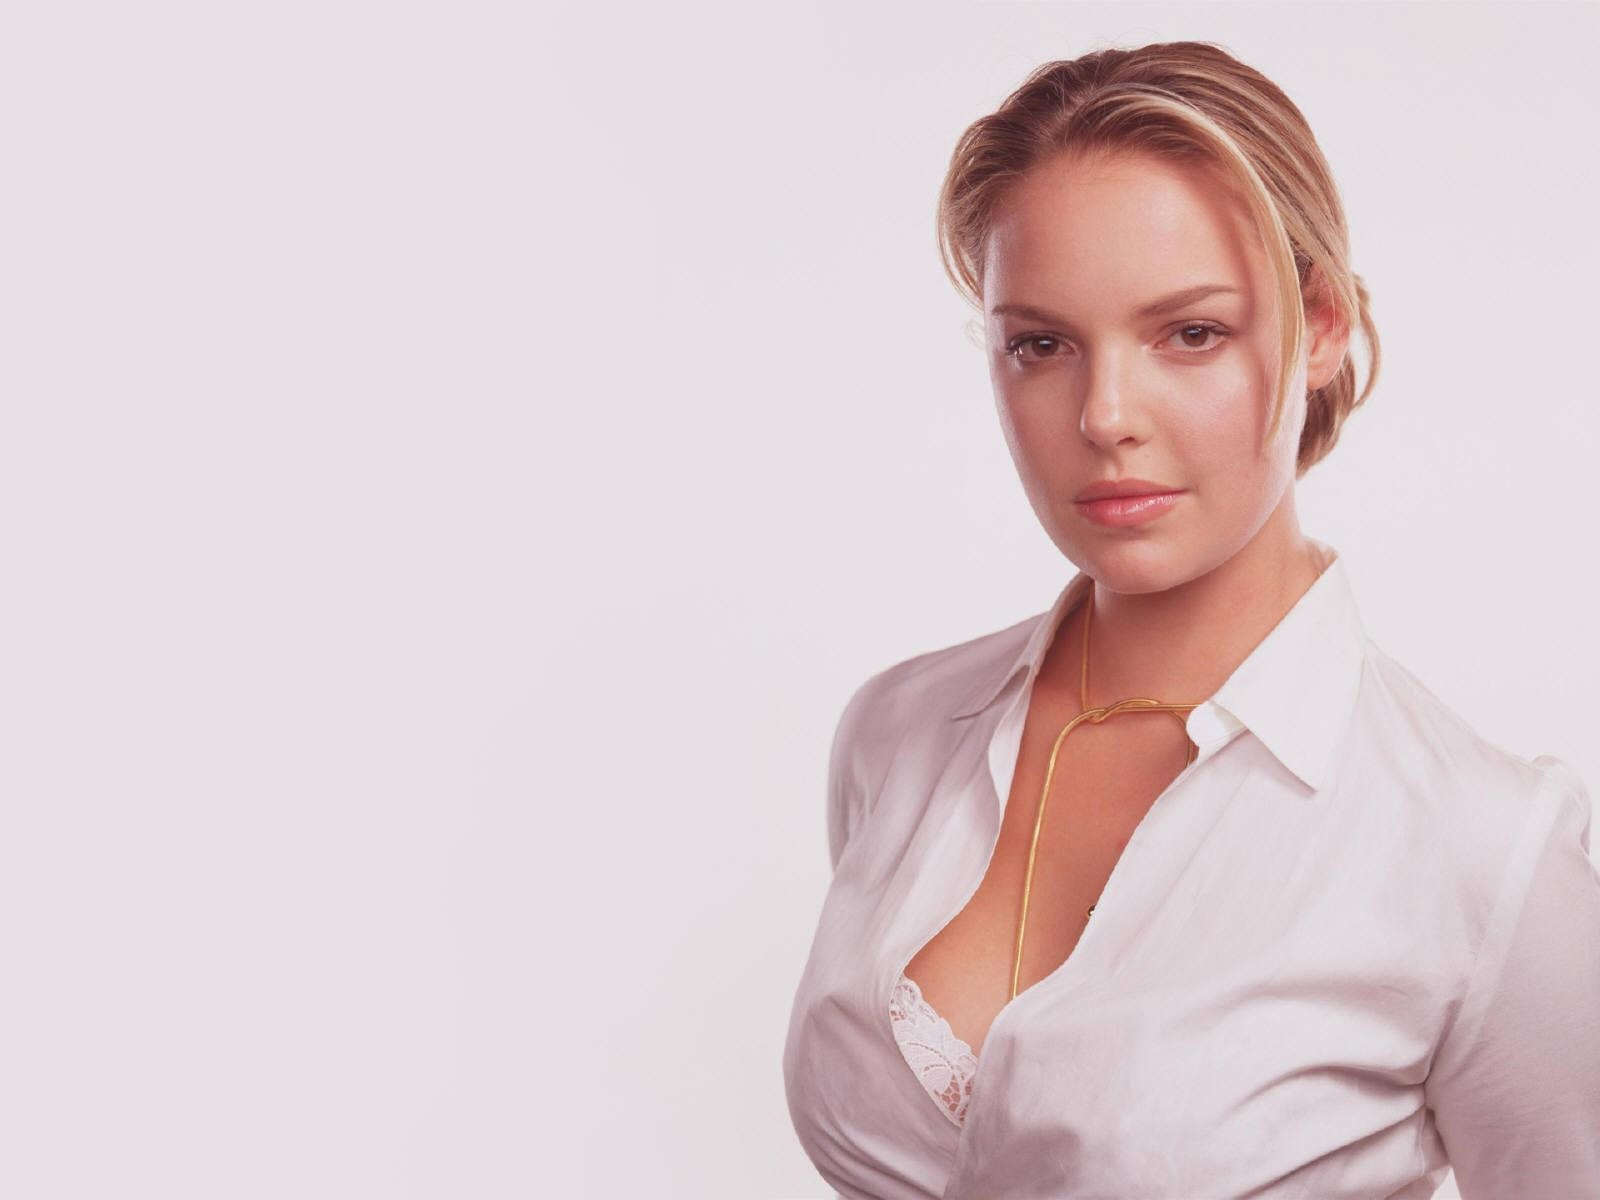 2560x1080 Katherine Heigl Boobs Images 2560x1080 Resolution 1600x1200